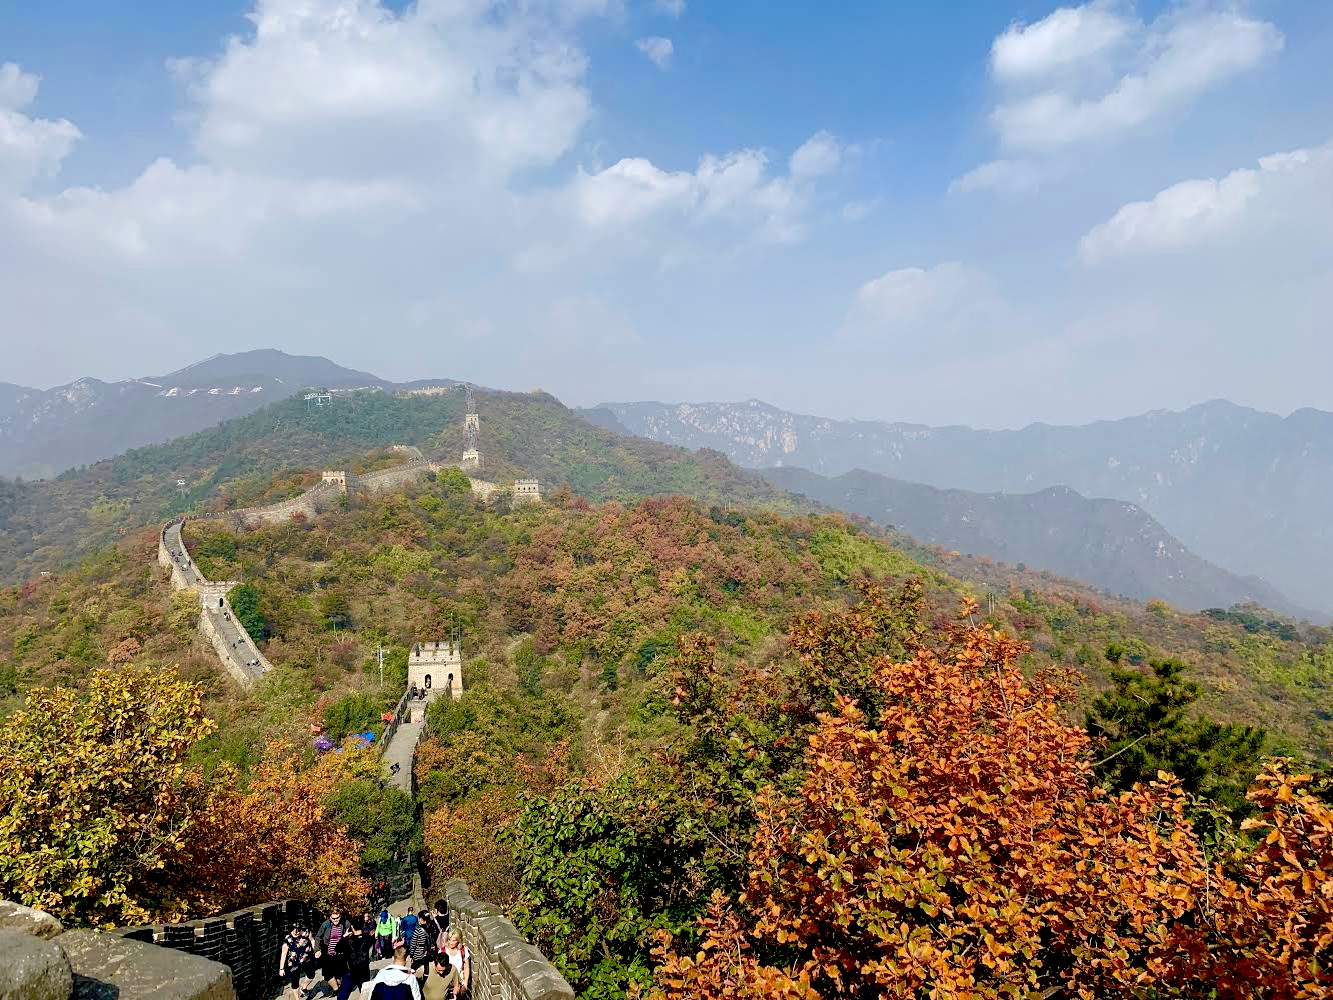 View of the great wall during autumn